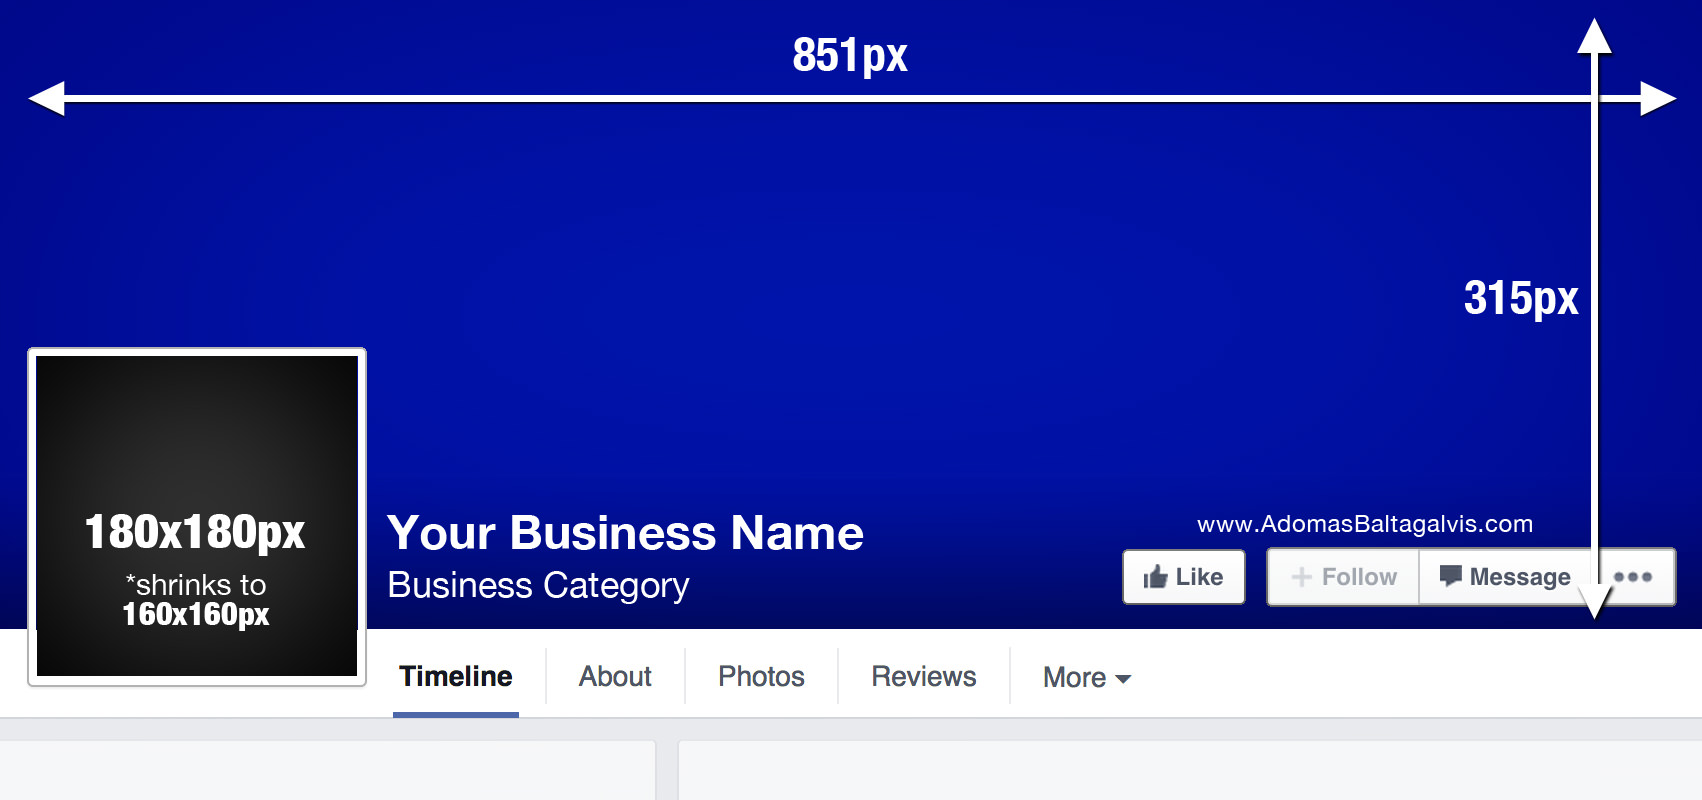 Facebook cover photo dimensions, profile picture design measurements - 851x315px in size, 2015 | AdomasBaltagalvis.com #Facebook